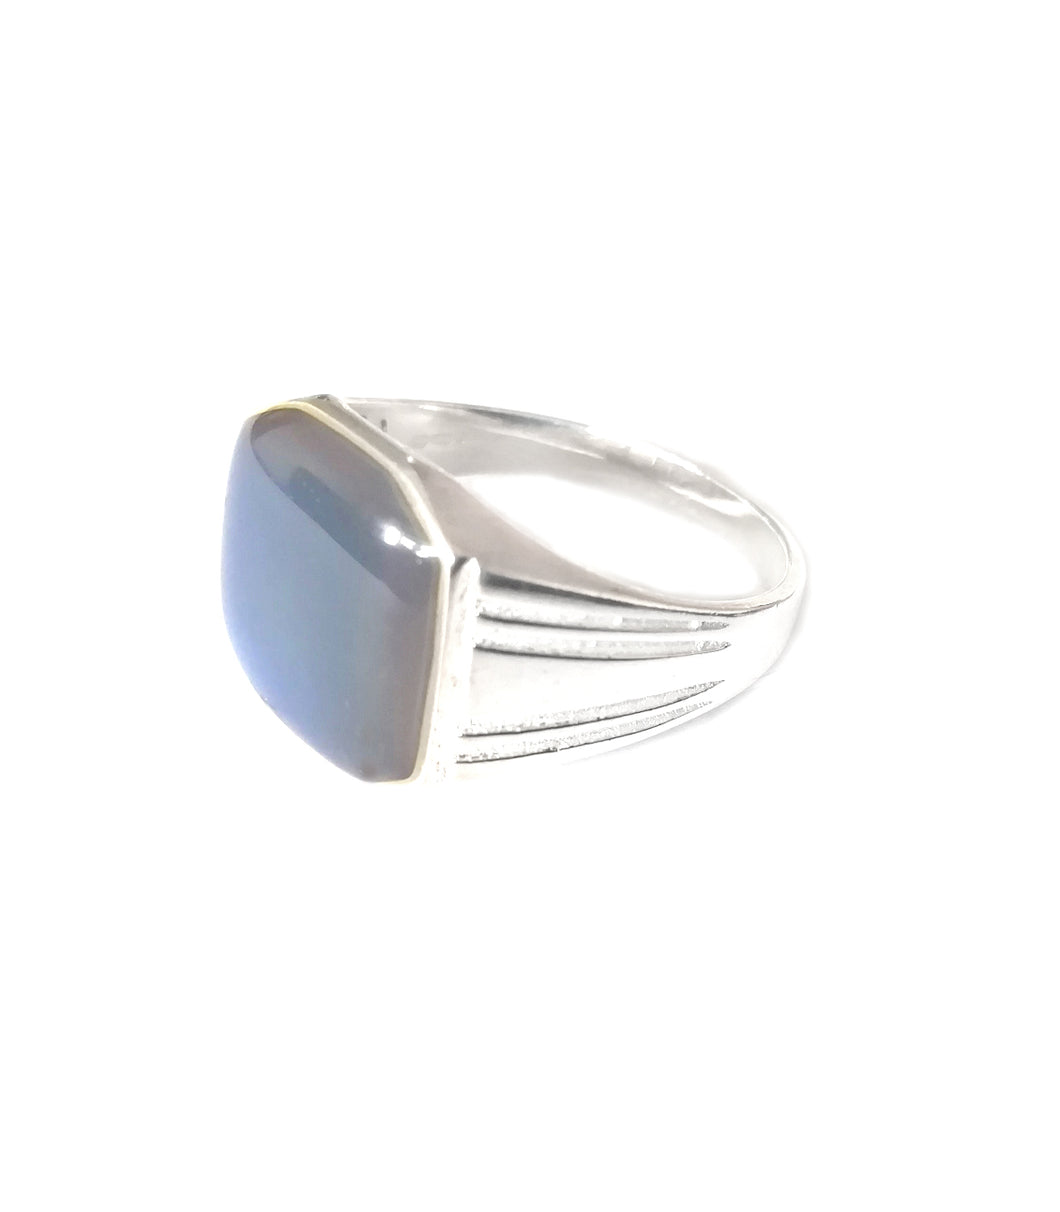 a men's mood ring in sterling silver showing a blue mood color